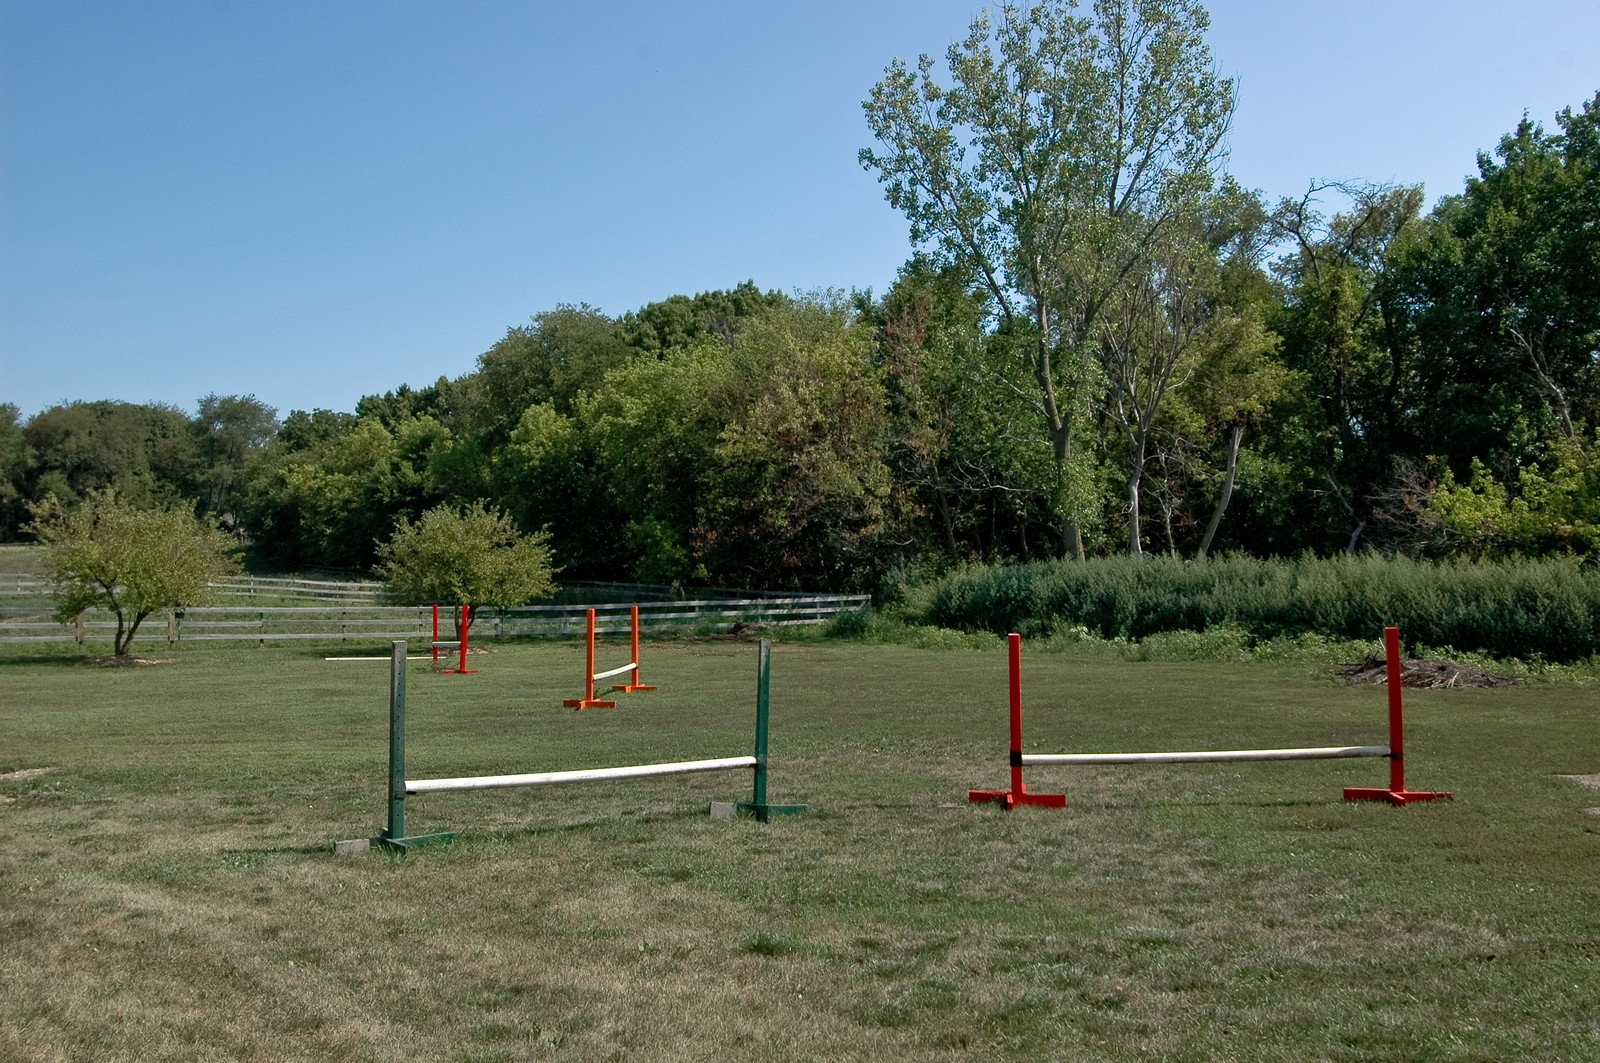 Real Estate Photography - 40W960 Chippewa Pass, Elgin, IL, 60124 - Cross Country Course with Jumps